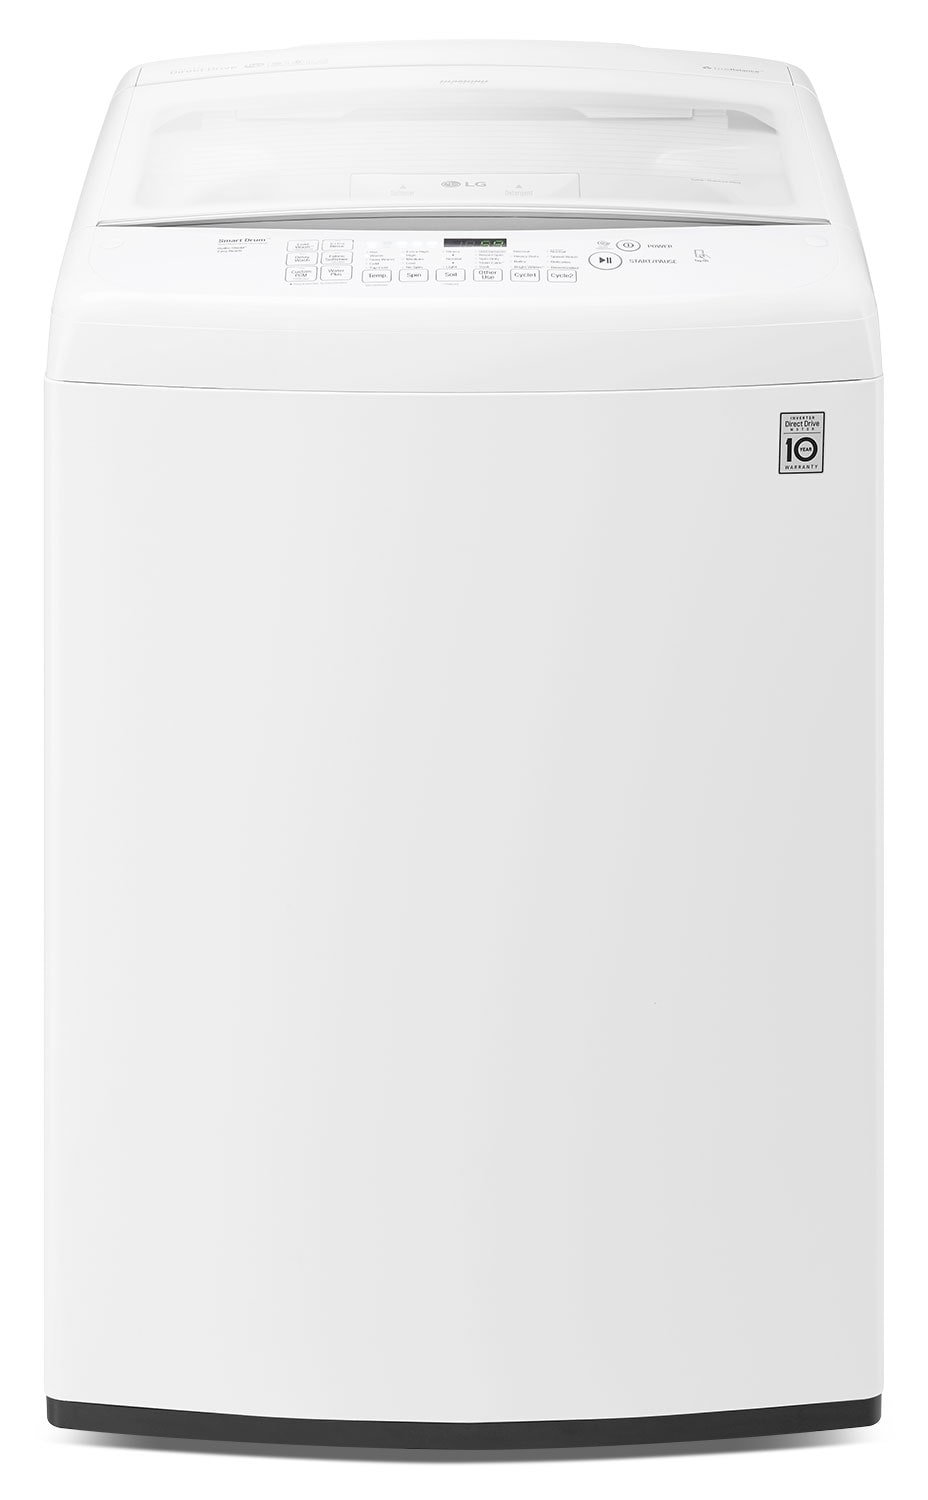 Washers and Dryers - LG 5.2 Cu. Ft. High-Efficiency Top-Load Washer with Front Controls – White